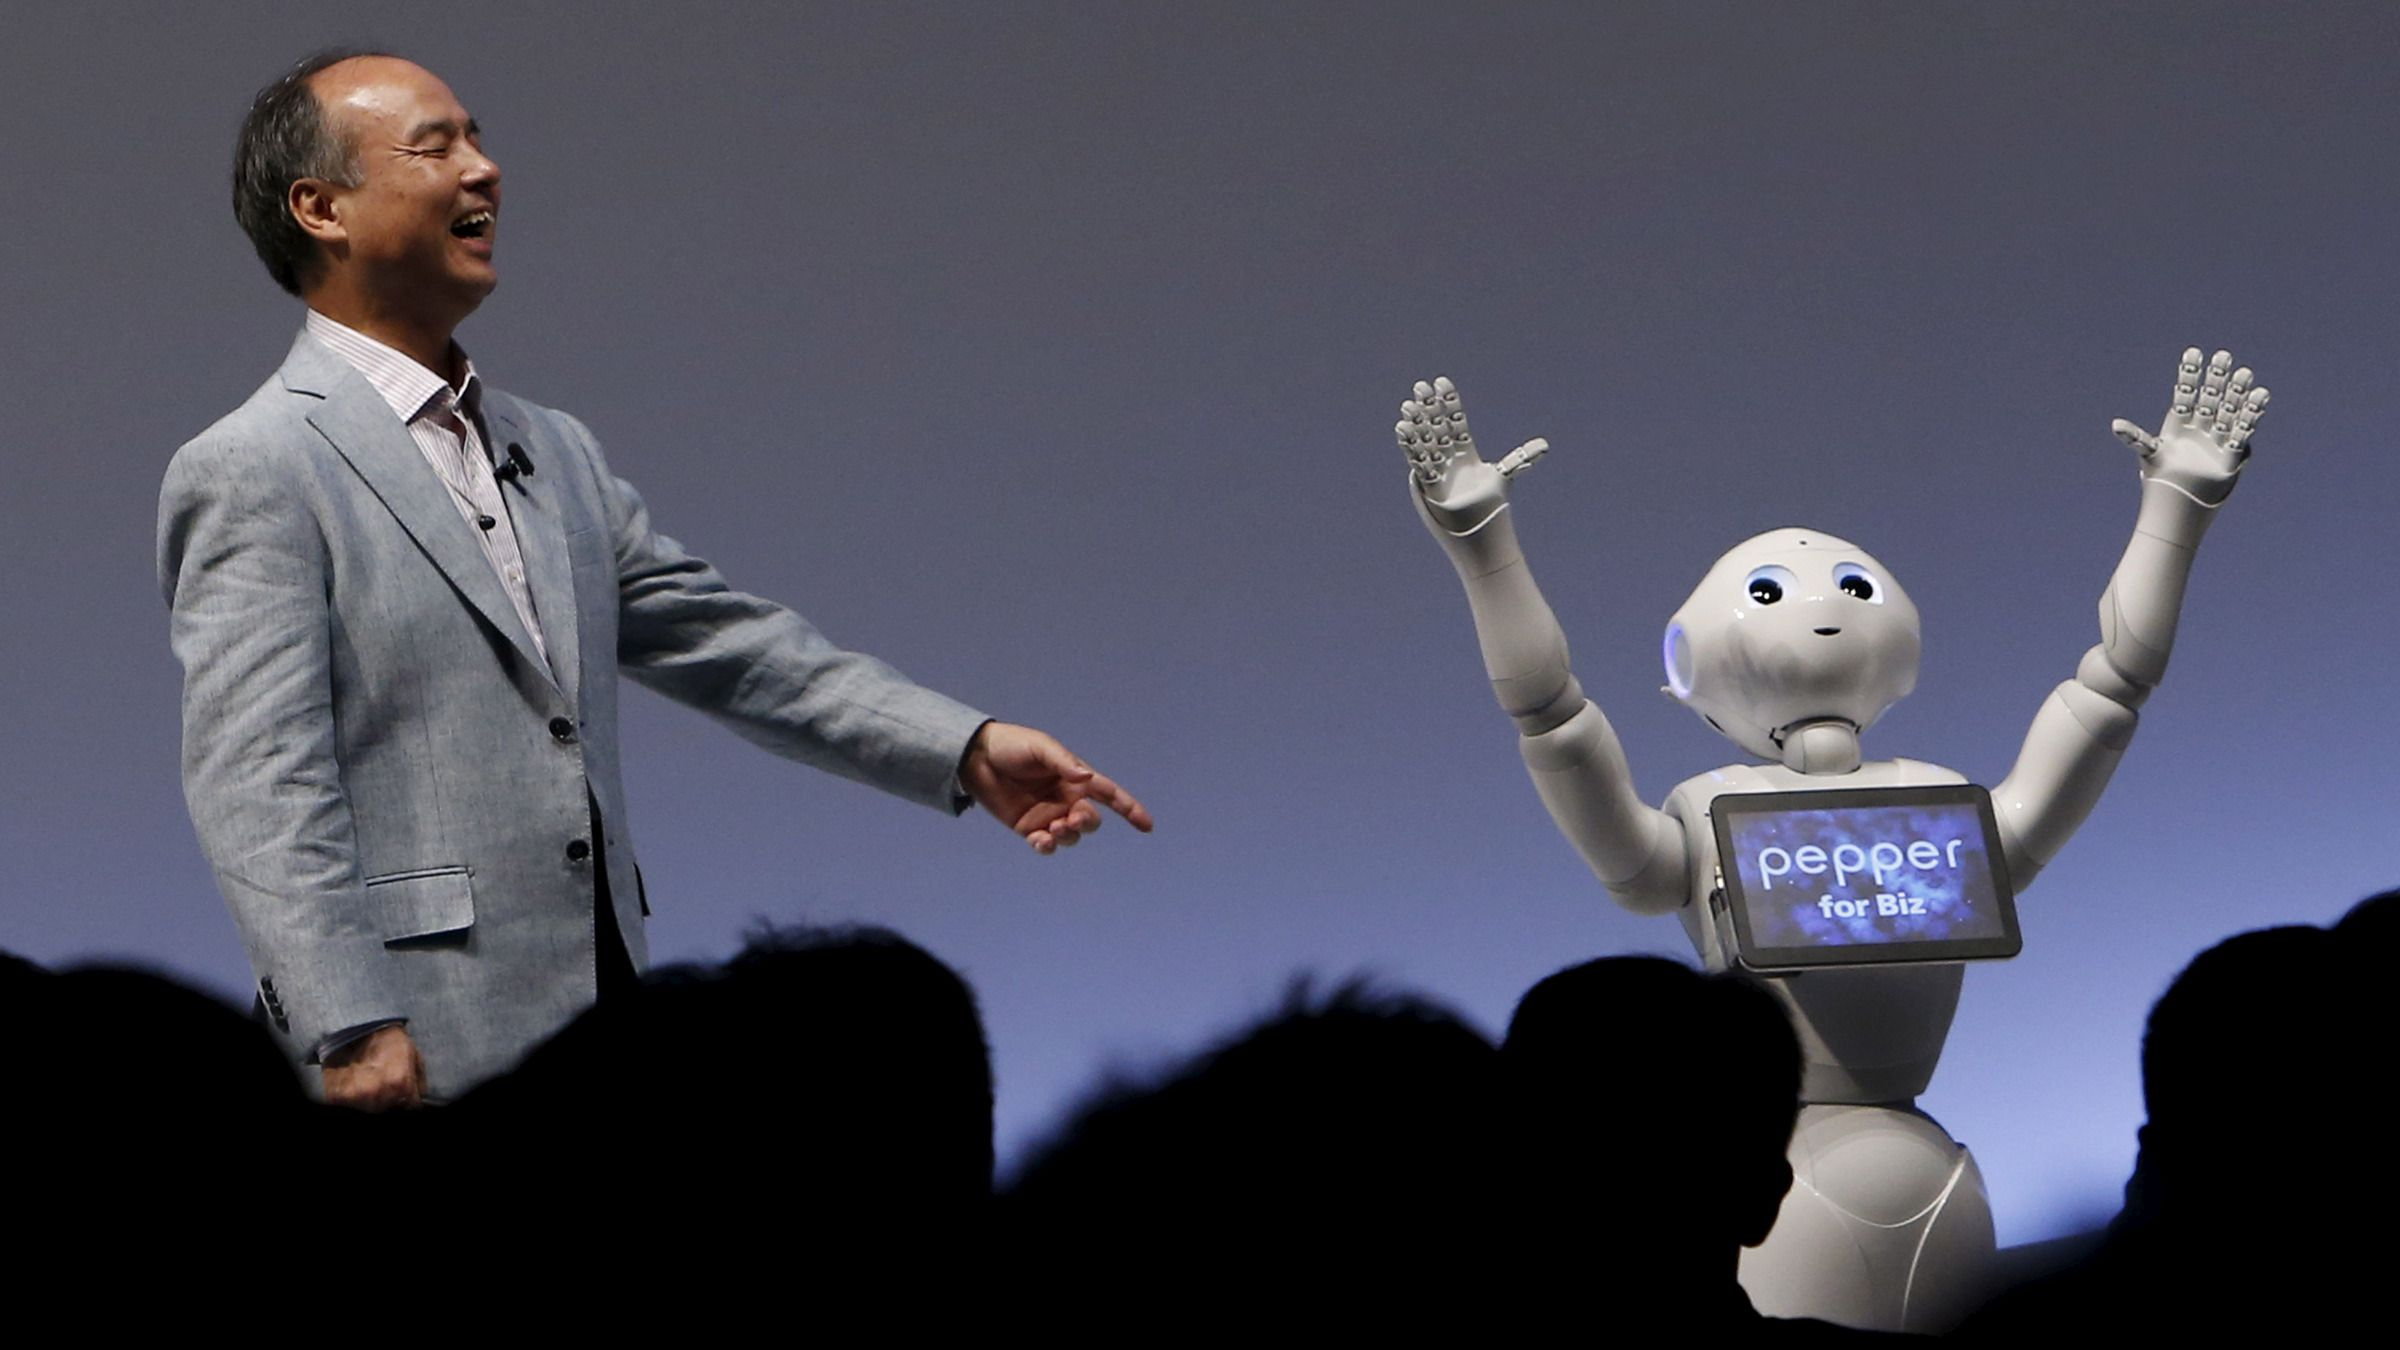 "SoftBank Group Corp. Chairman and CEO Masayoshi Son reacts as SoftBank's human-like robots named ""Pepper"" performs during the SoftBank World 2015 event in Tokyo, Japan, July 30, 2015."